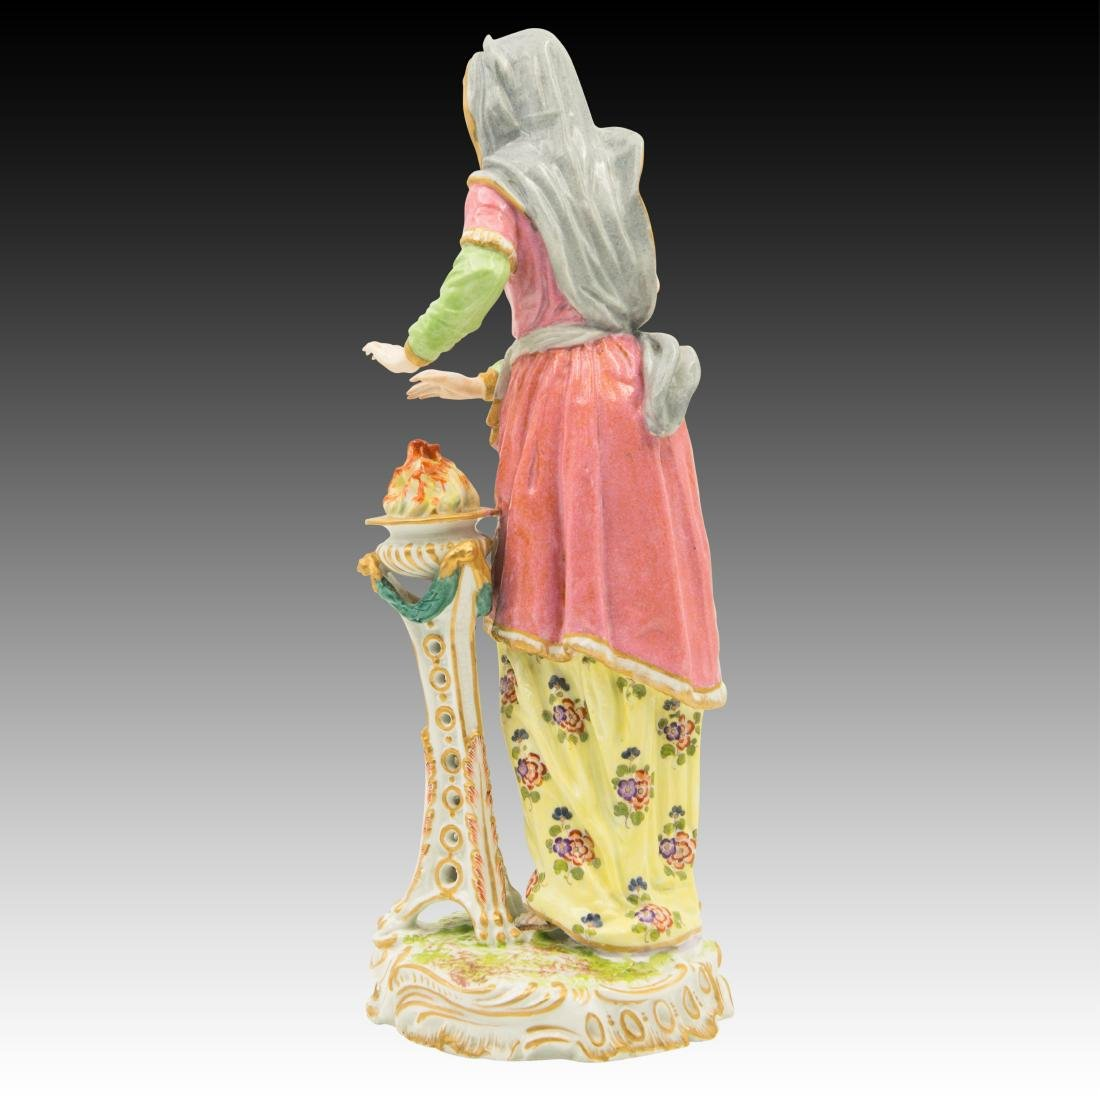 Tall Woman warming her hands by a fire Figurine - 3